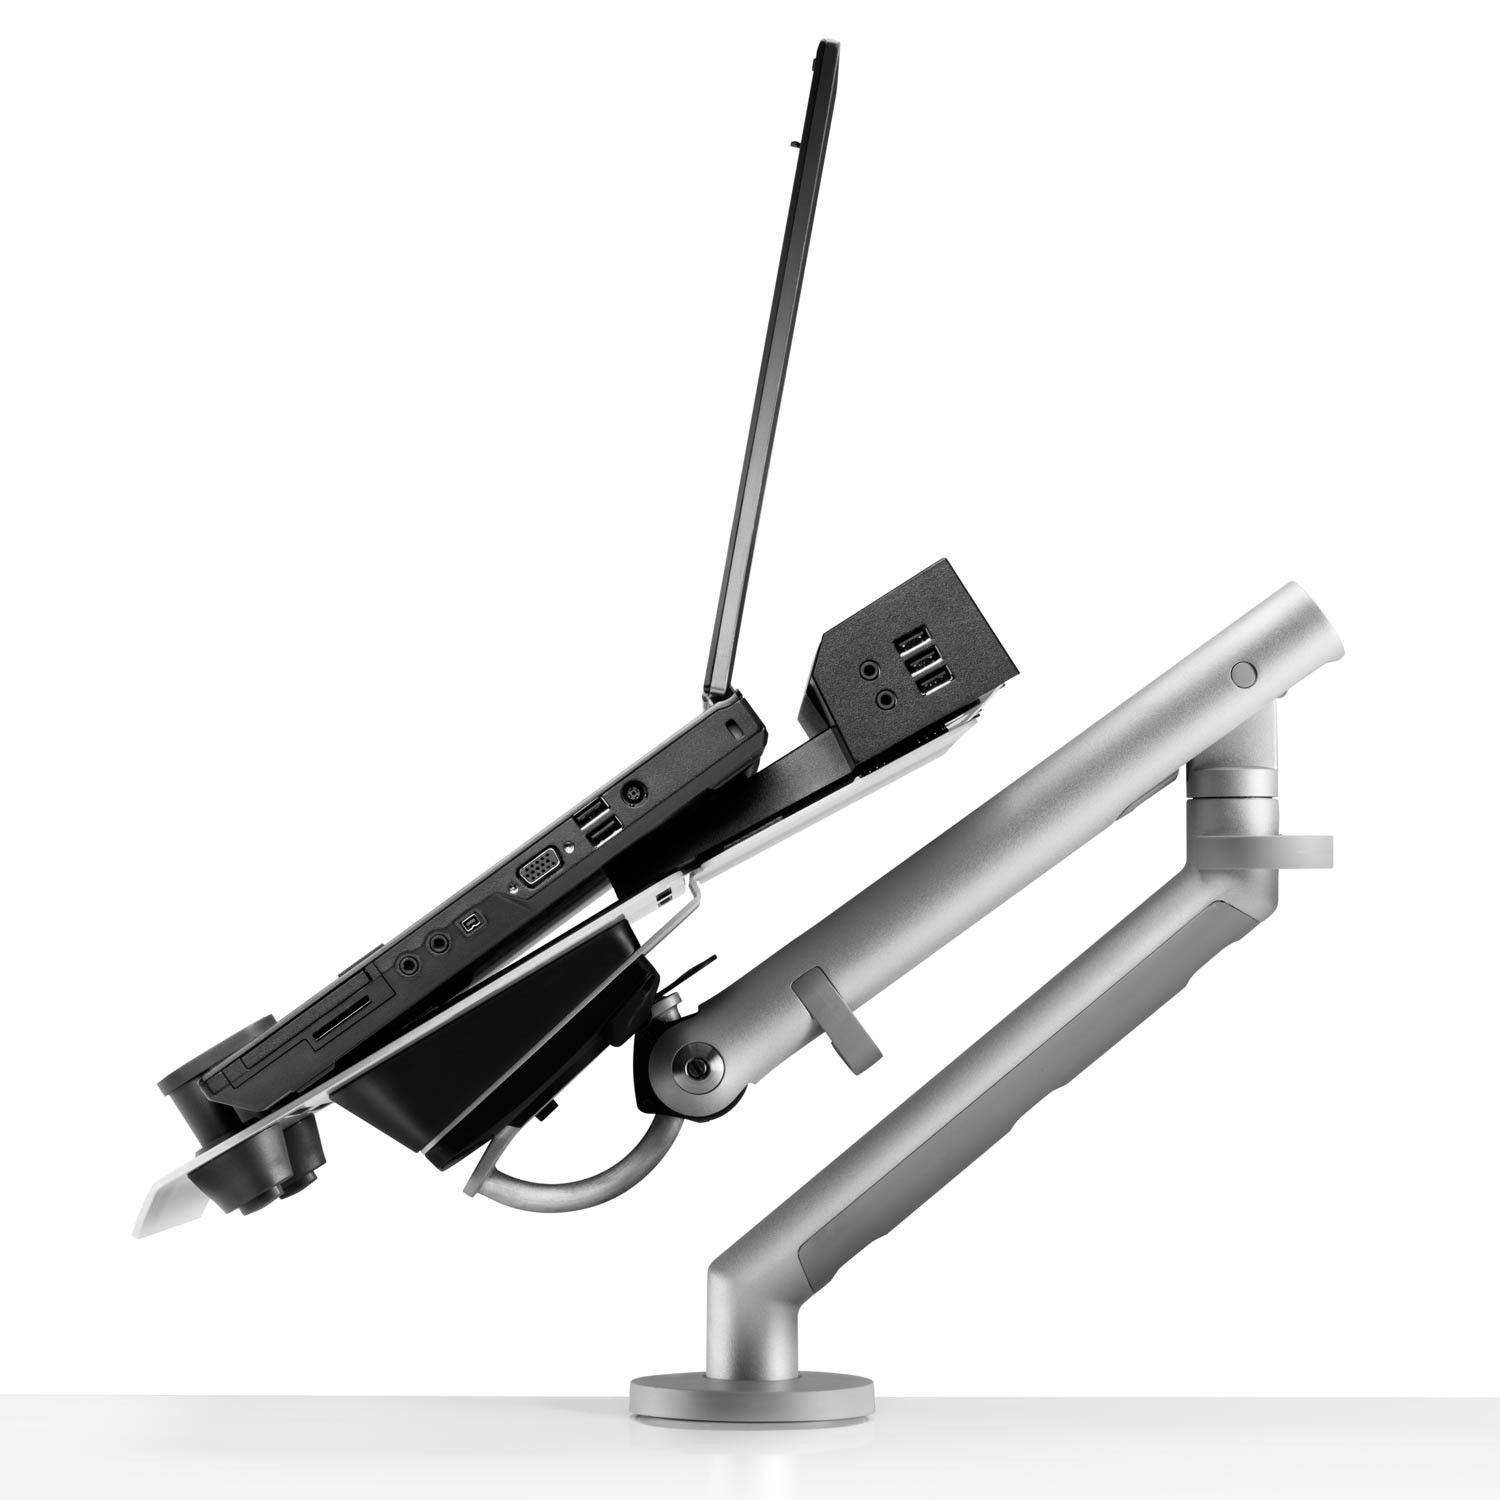 CBS Flo Laptop Mount With Docking Station